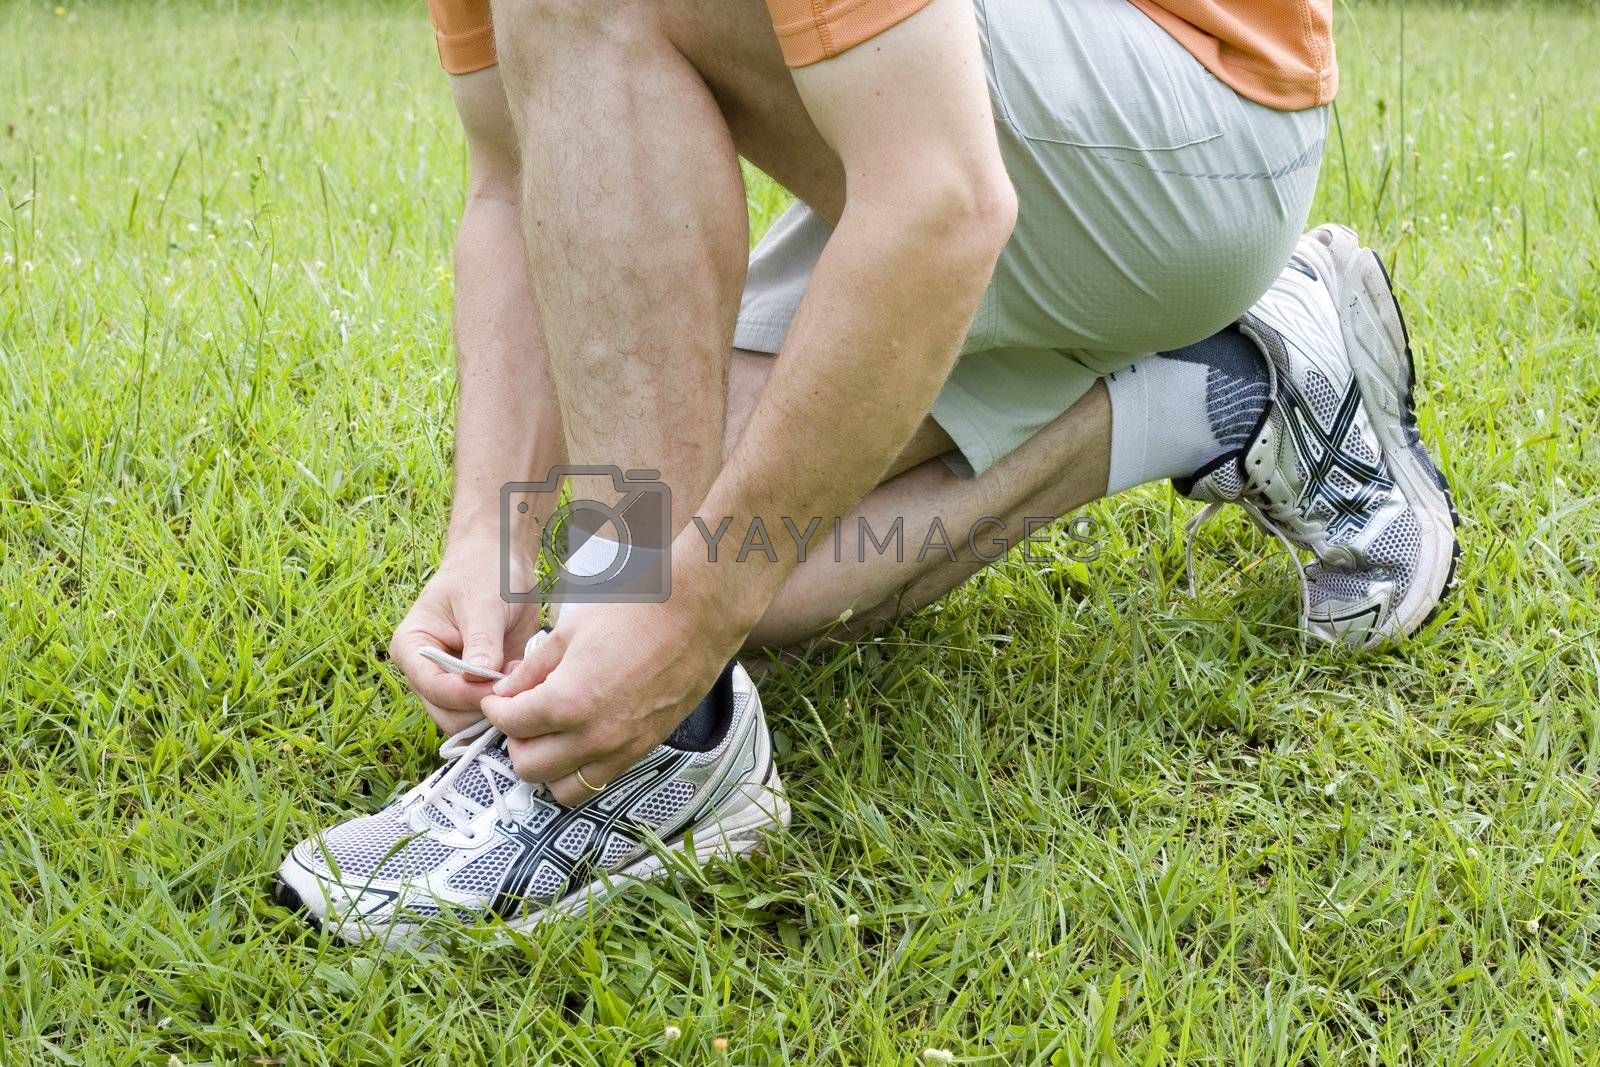 Jogger tying his shoes by ArtmannWitte